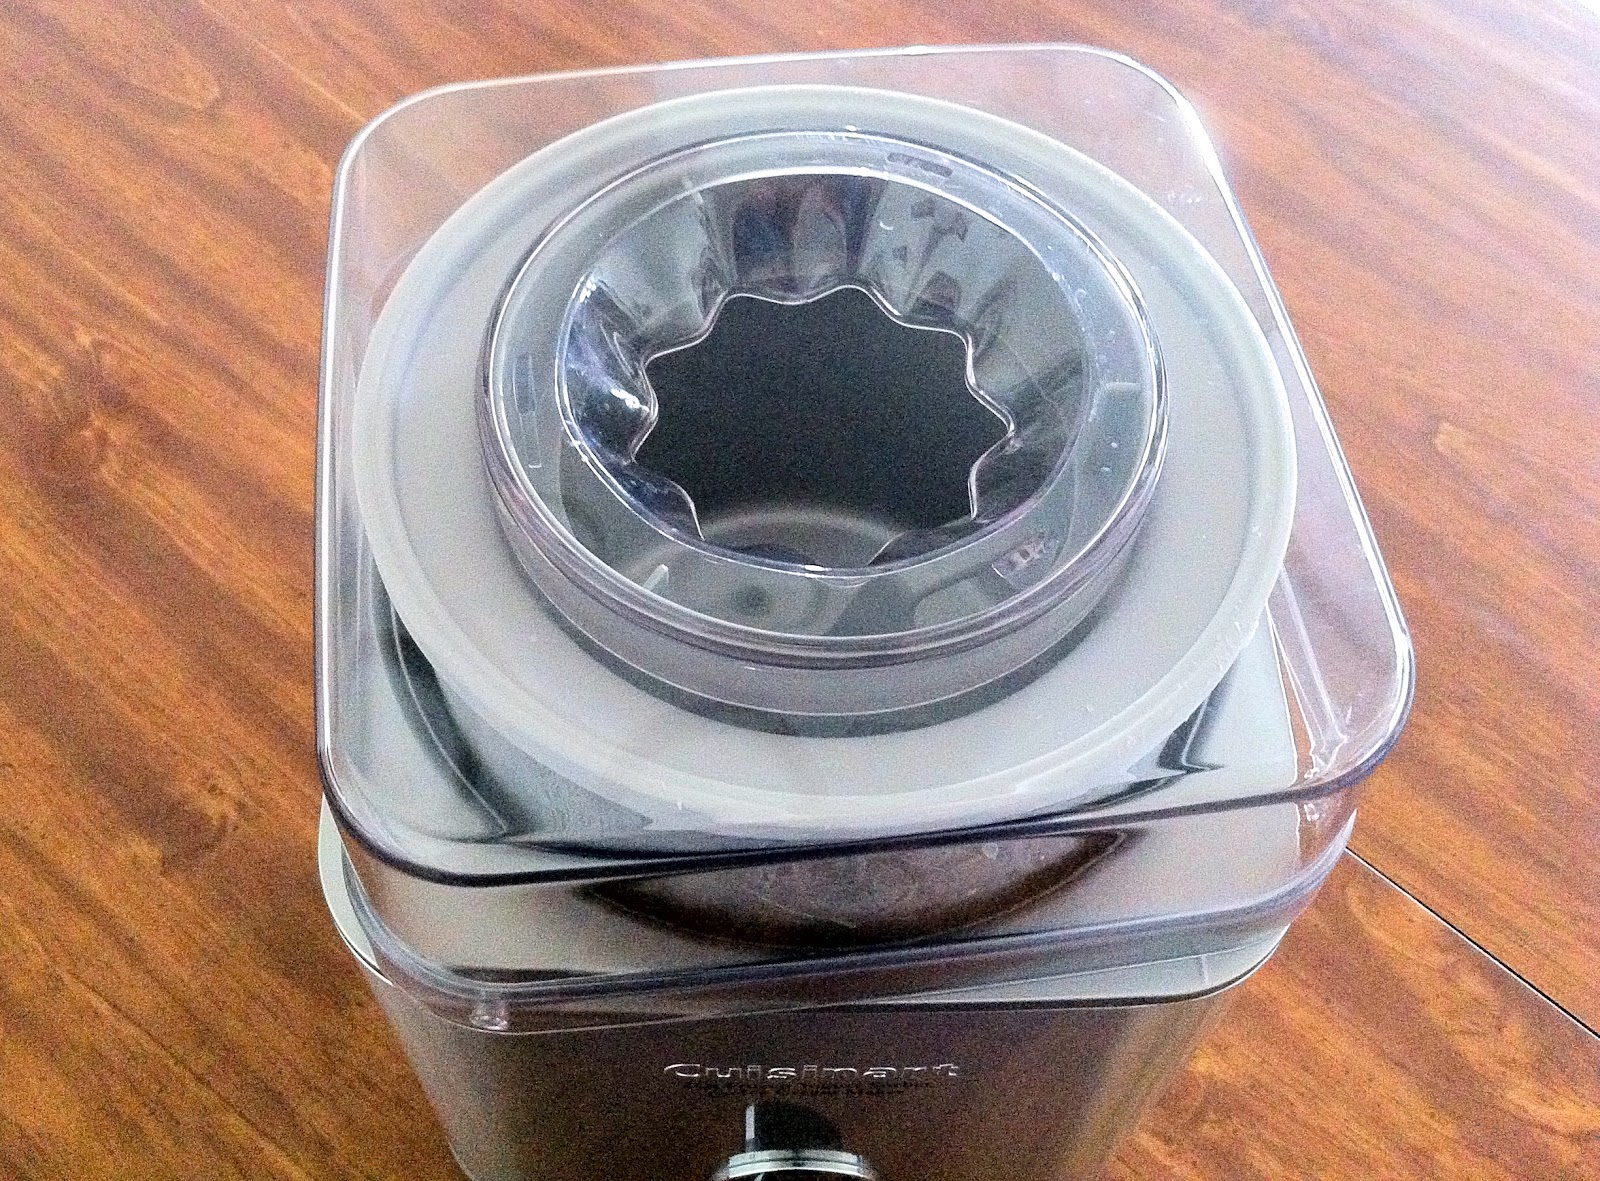 Locking Lid on Ice Cream Maker